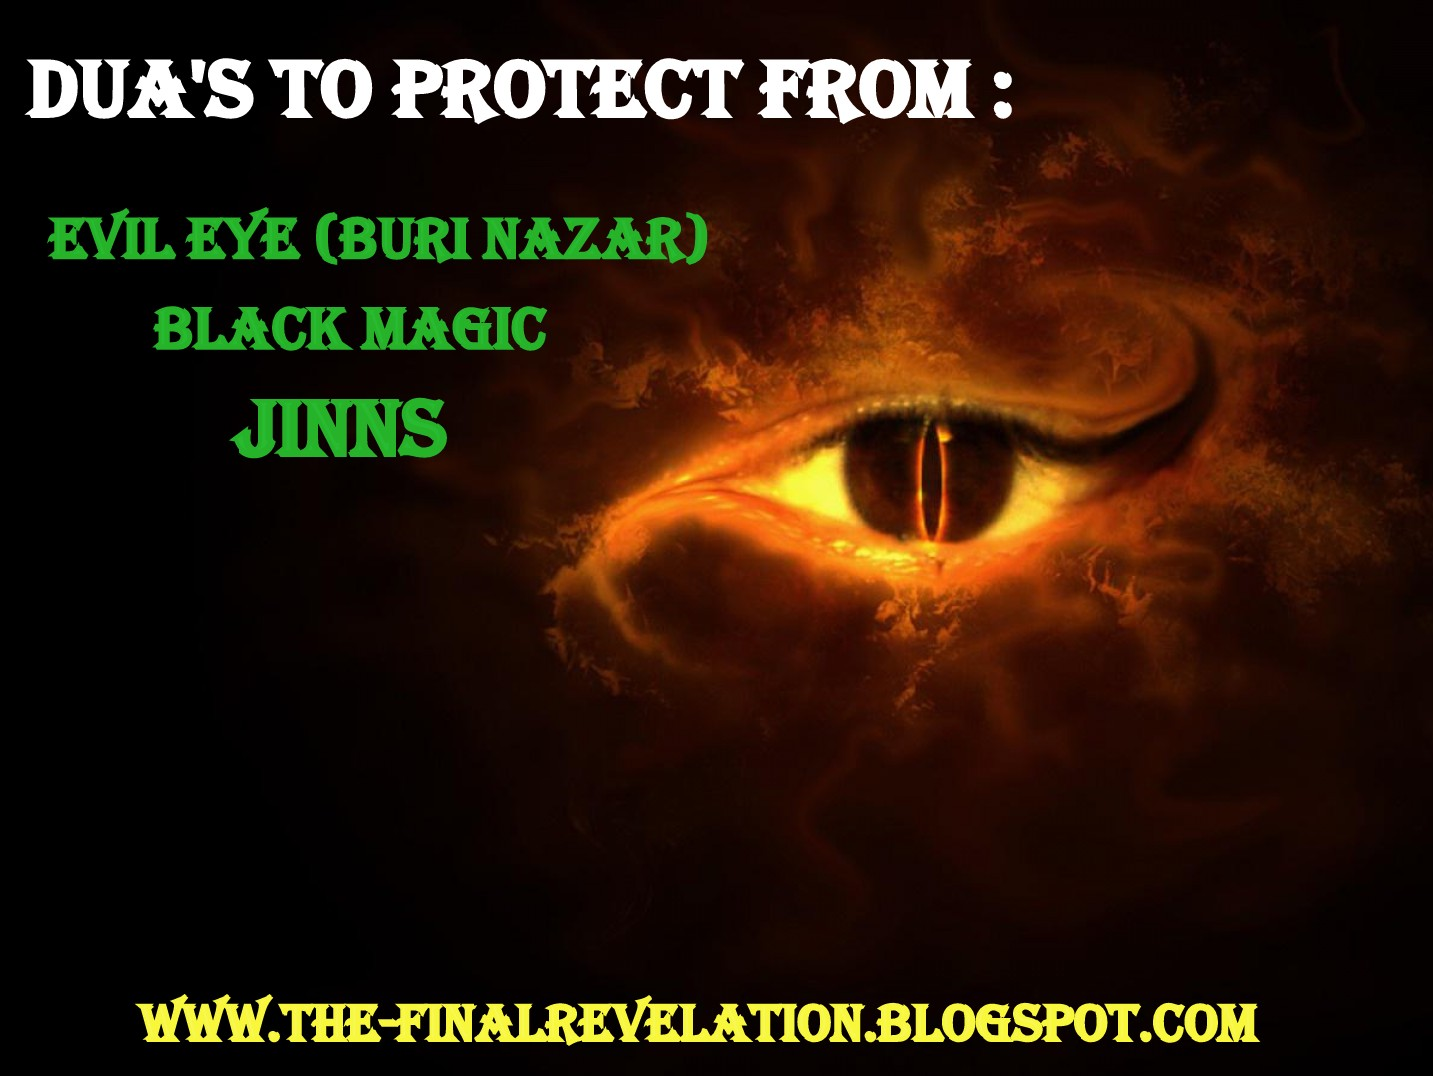 DUAS TO PROTECT FROM JINNS, EVIL EYE (BURI NAZAR) AND BLACK